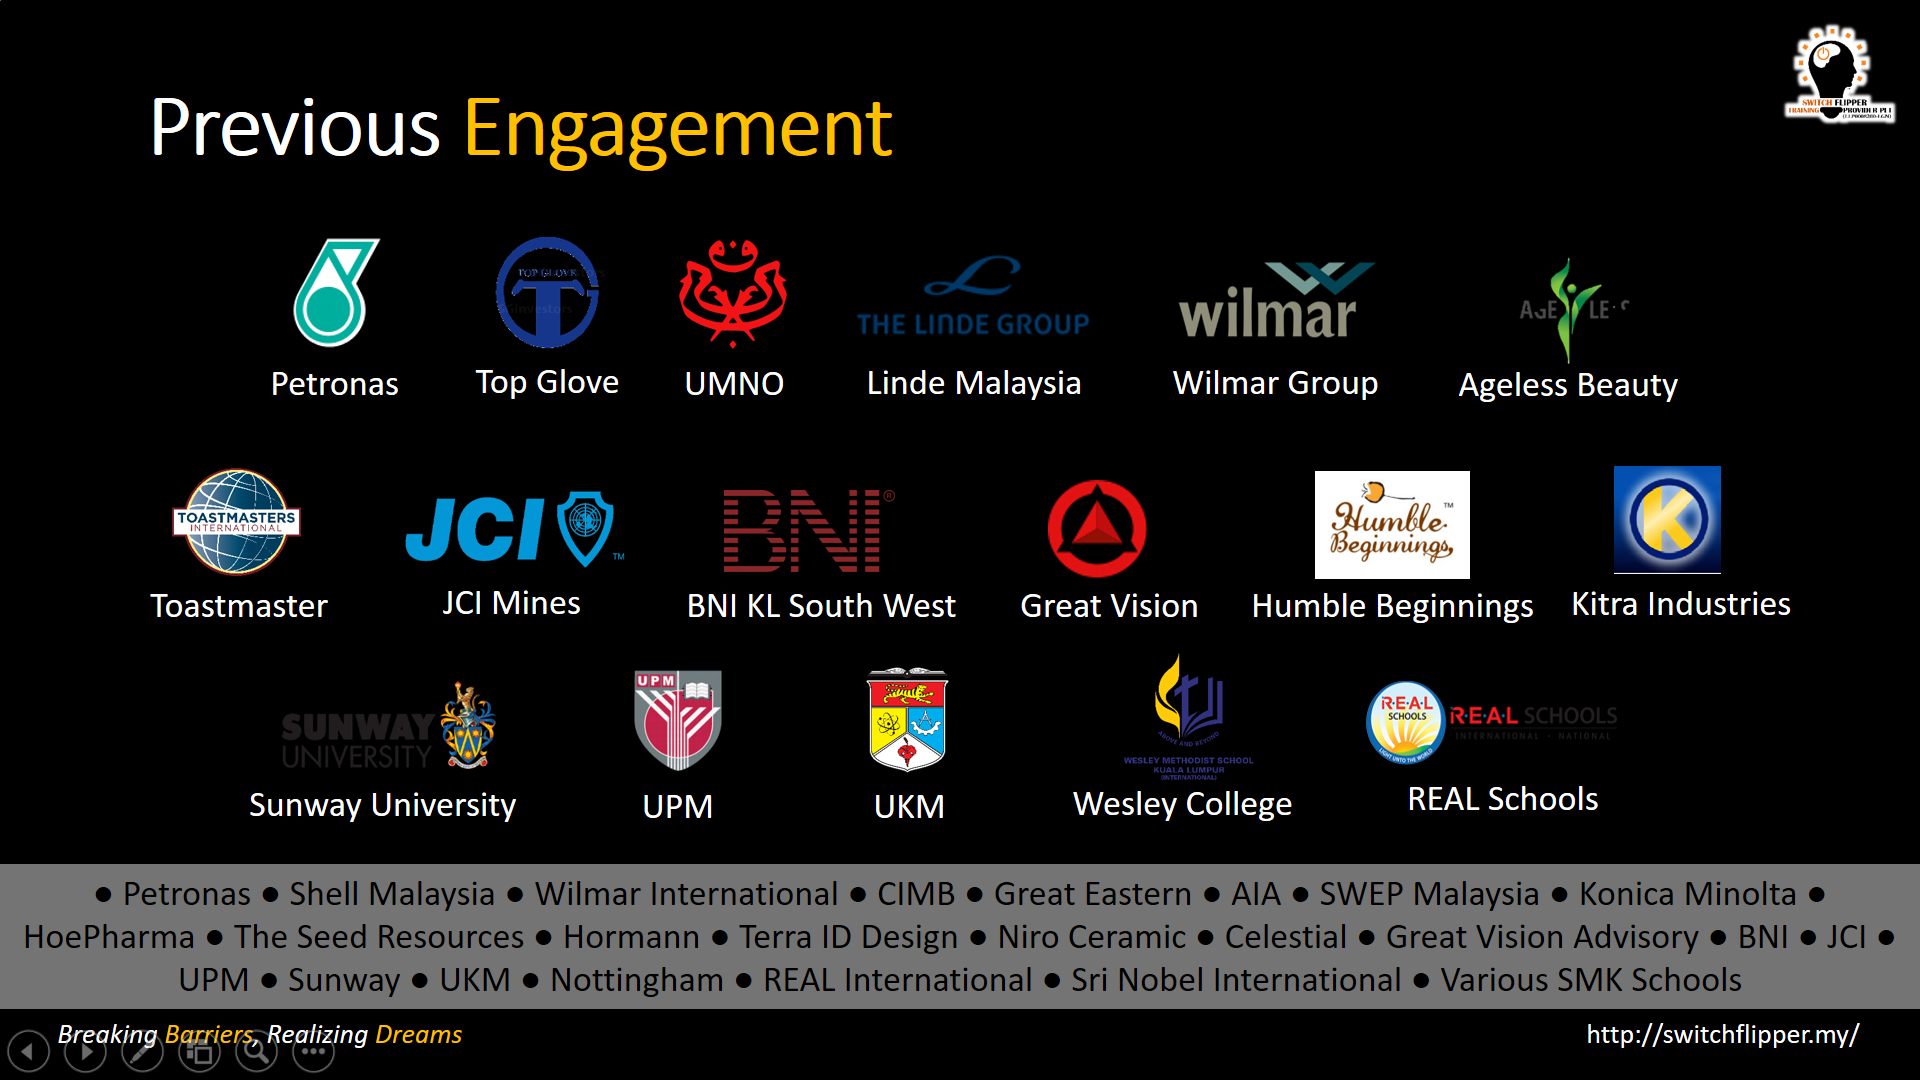 CORPORATE ENGAGEMENTS